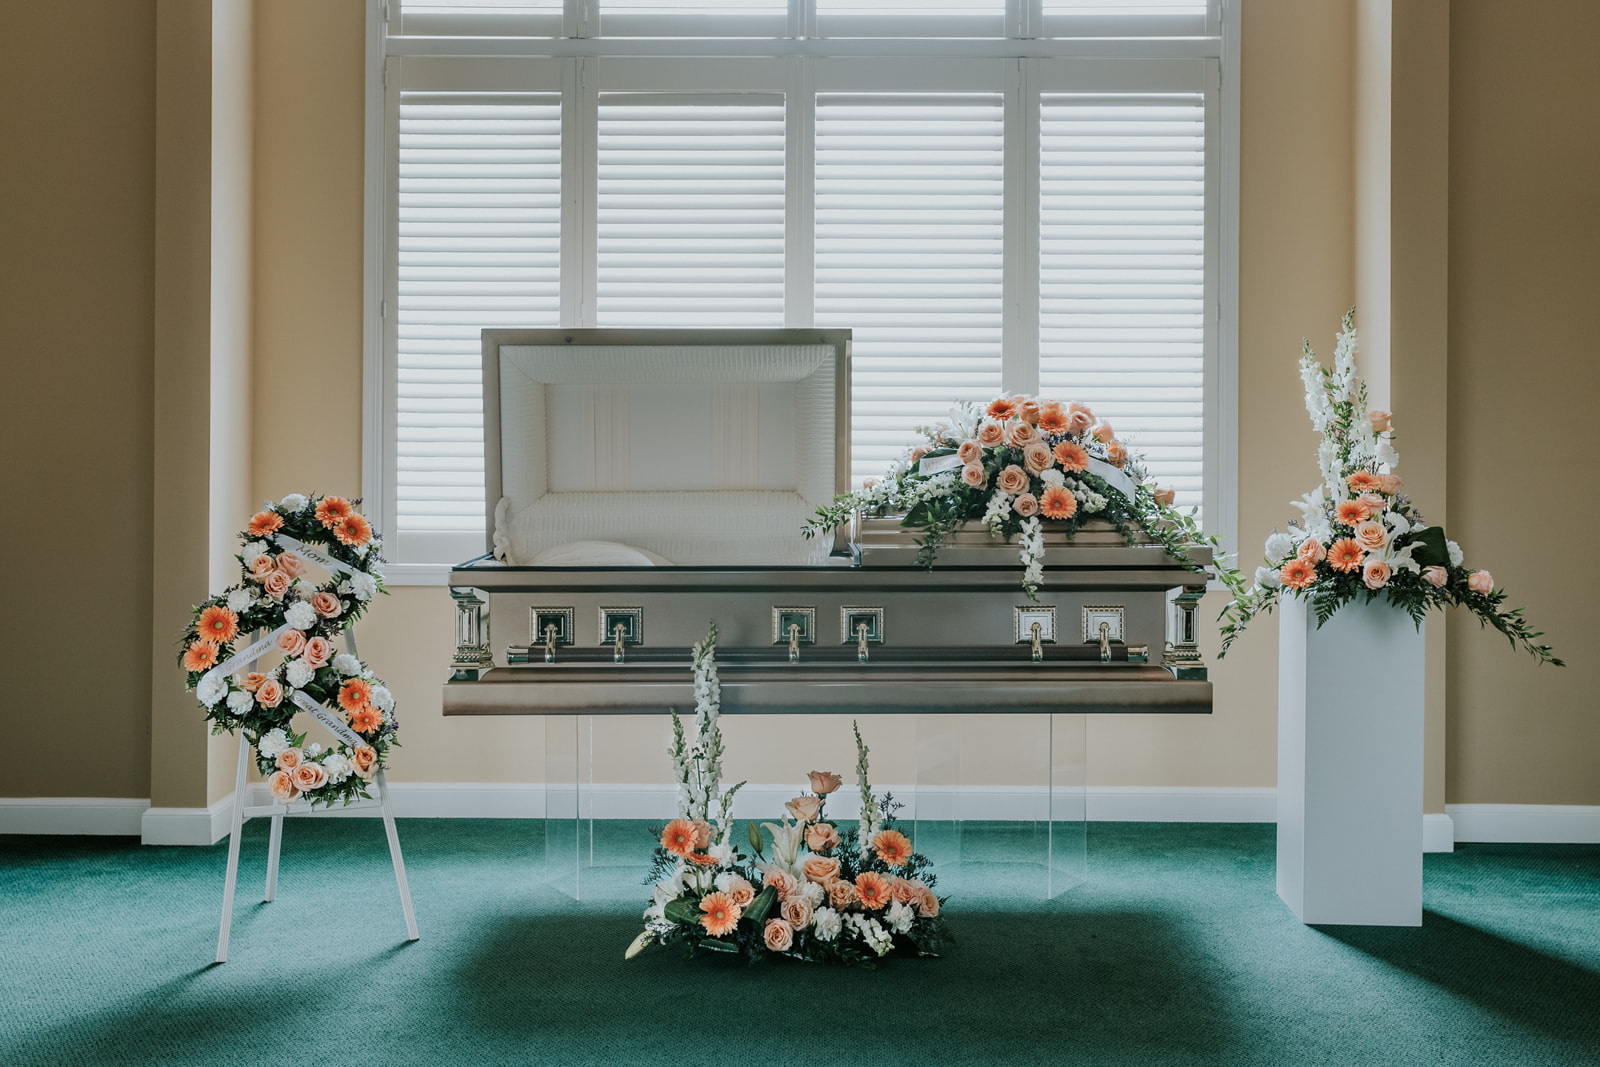 The Honeycomb Collection is arranged using gentle peach tones accented by white and a touch of lavender. Peach gerbera and peach roses are intensified by the white snapdragons, lilies, and carnations.  The collection features five floral pieces: the casket spray, floor arrangement, pedestal arrangement, generations wreath, and memorial urn arrangement. The memorial urn arrangement is designed as one piece but can accommodate two items. The generations wreath can emphasize the importance of family in one's life. Custom designed with three 12-inch wreaths and wrapped with custom printed ribbons, this is truly a memorable piece.